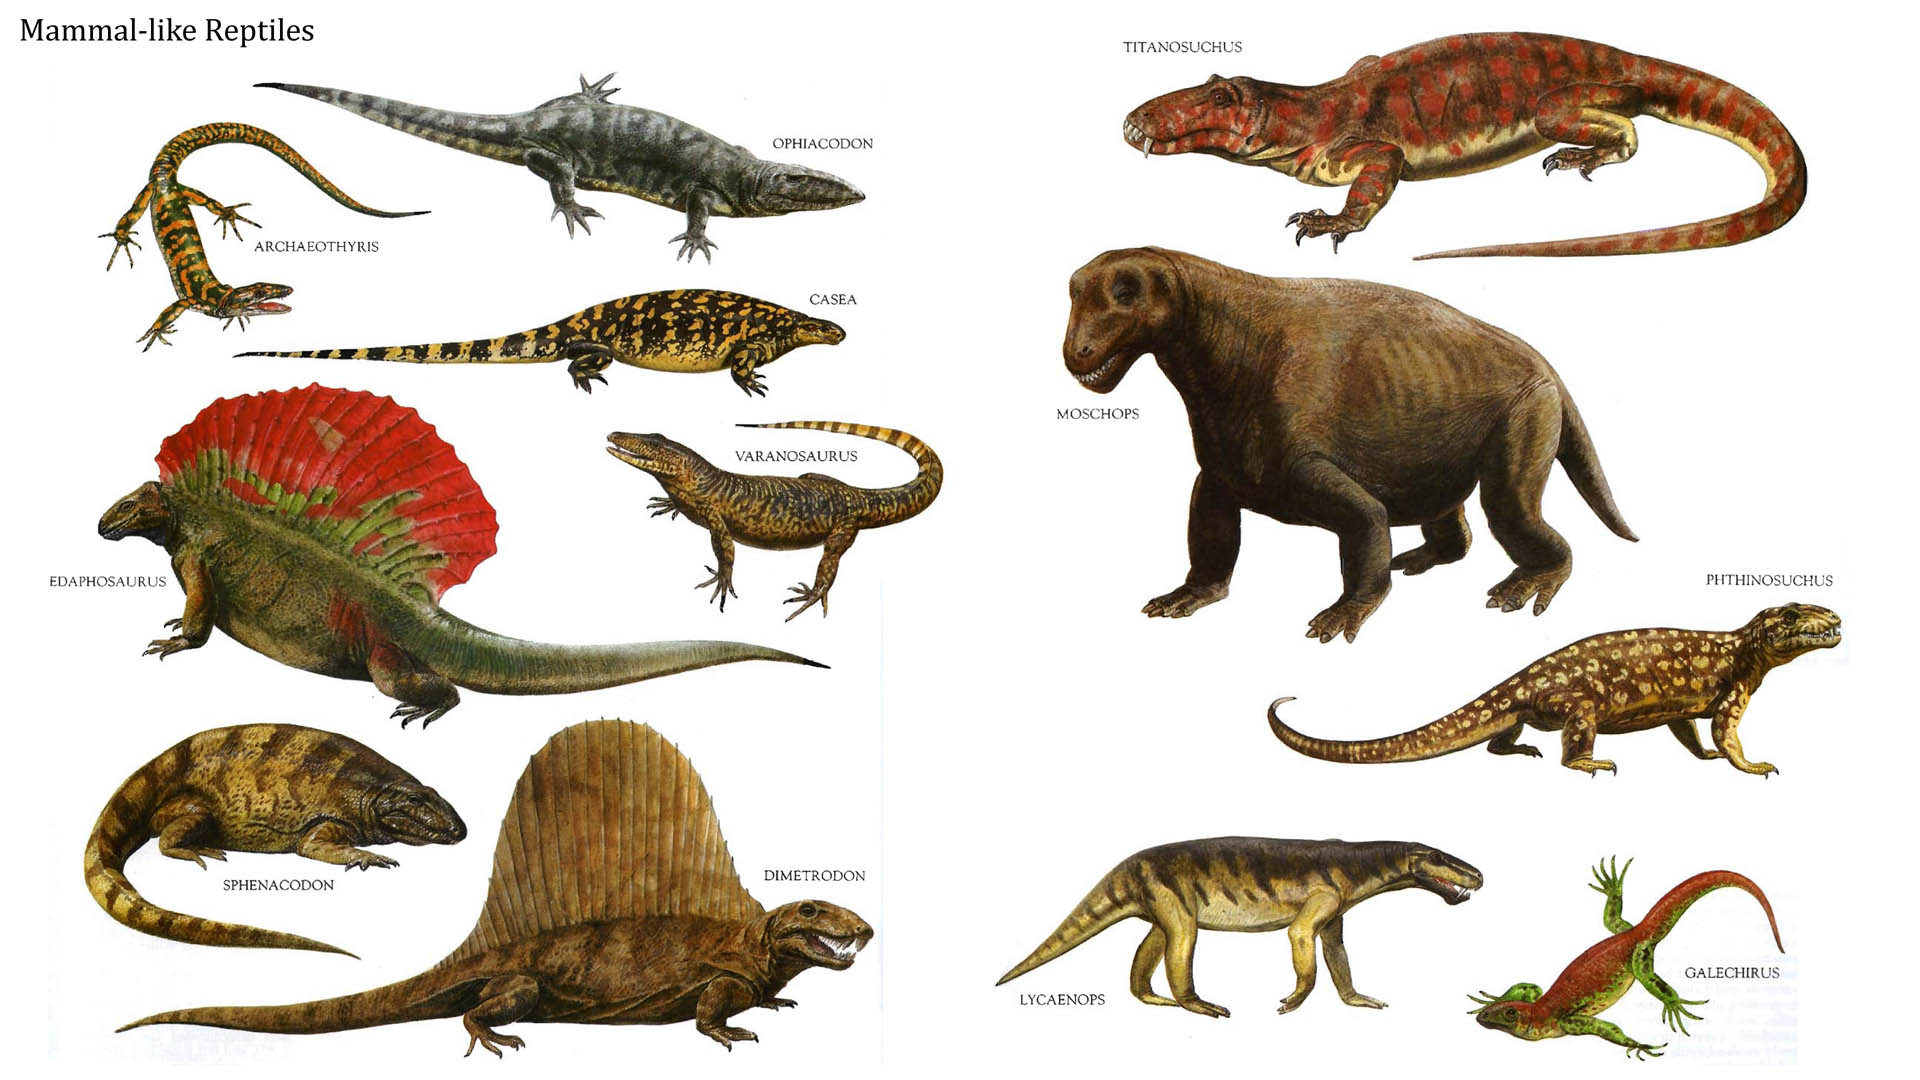 an analysis of the cretaceous period of the age of reptiles 2013) an analysis of the cretaceous period of the age of reptiles mahajanga basin 000 years ago cryo (cold) and genesis (birth) 24-5-2017 middle stone age humans in.